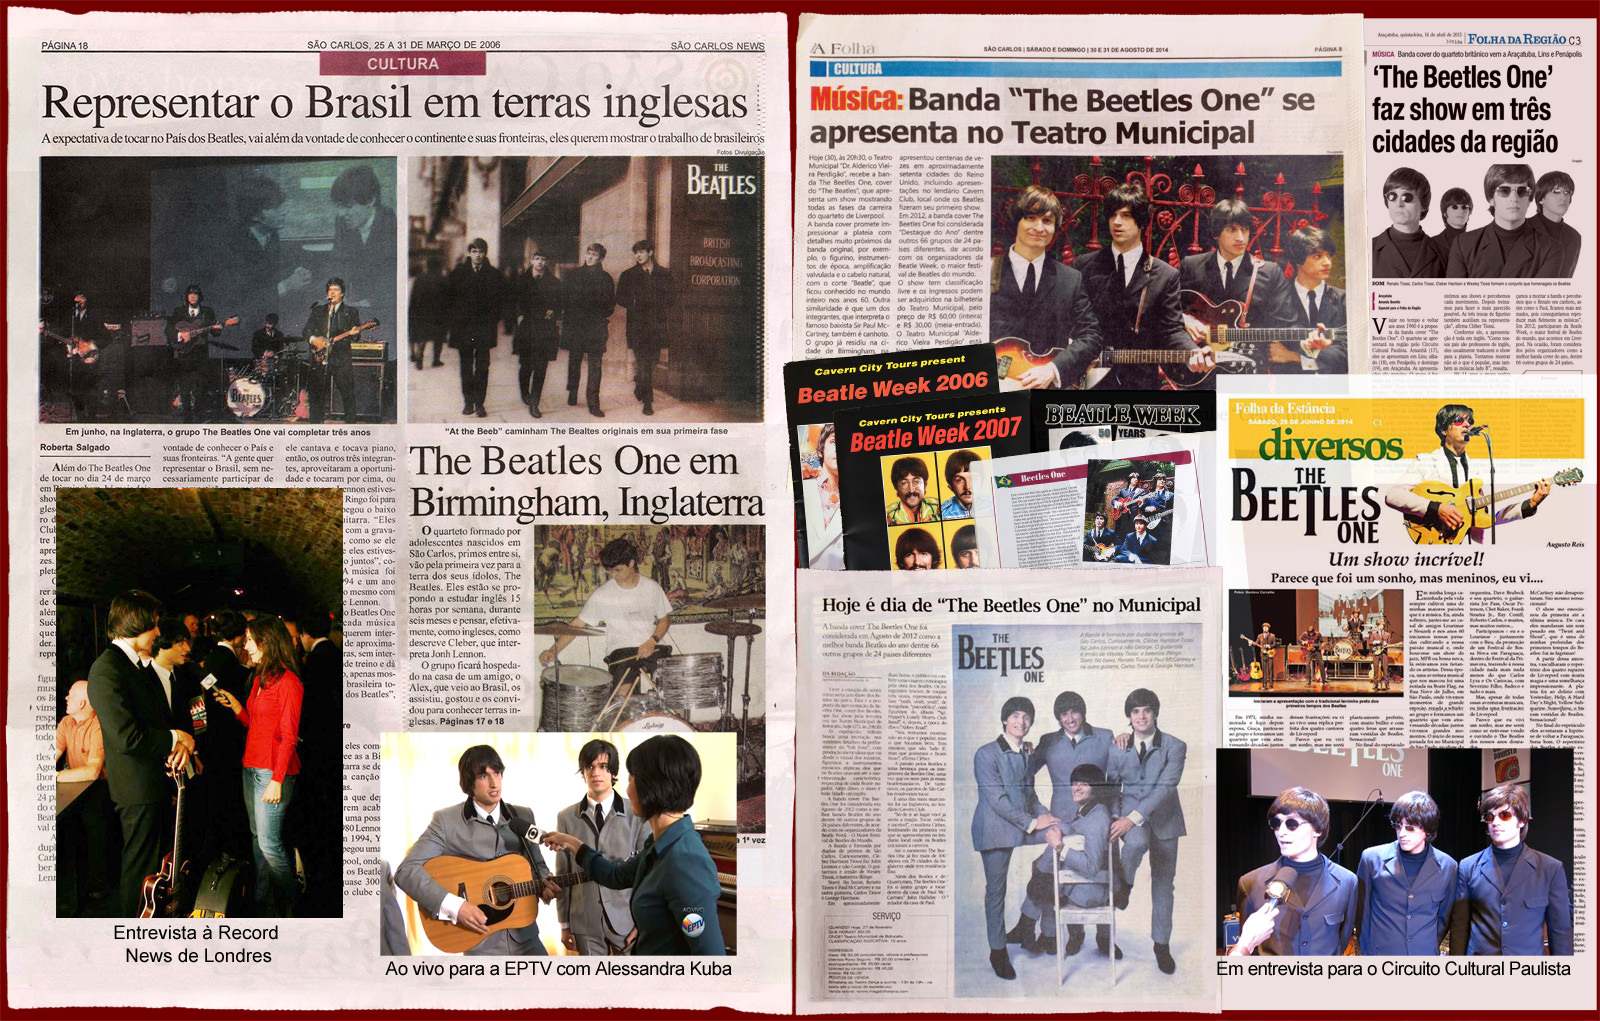 The Beatles Cover - The Beetles One - Imprensa